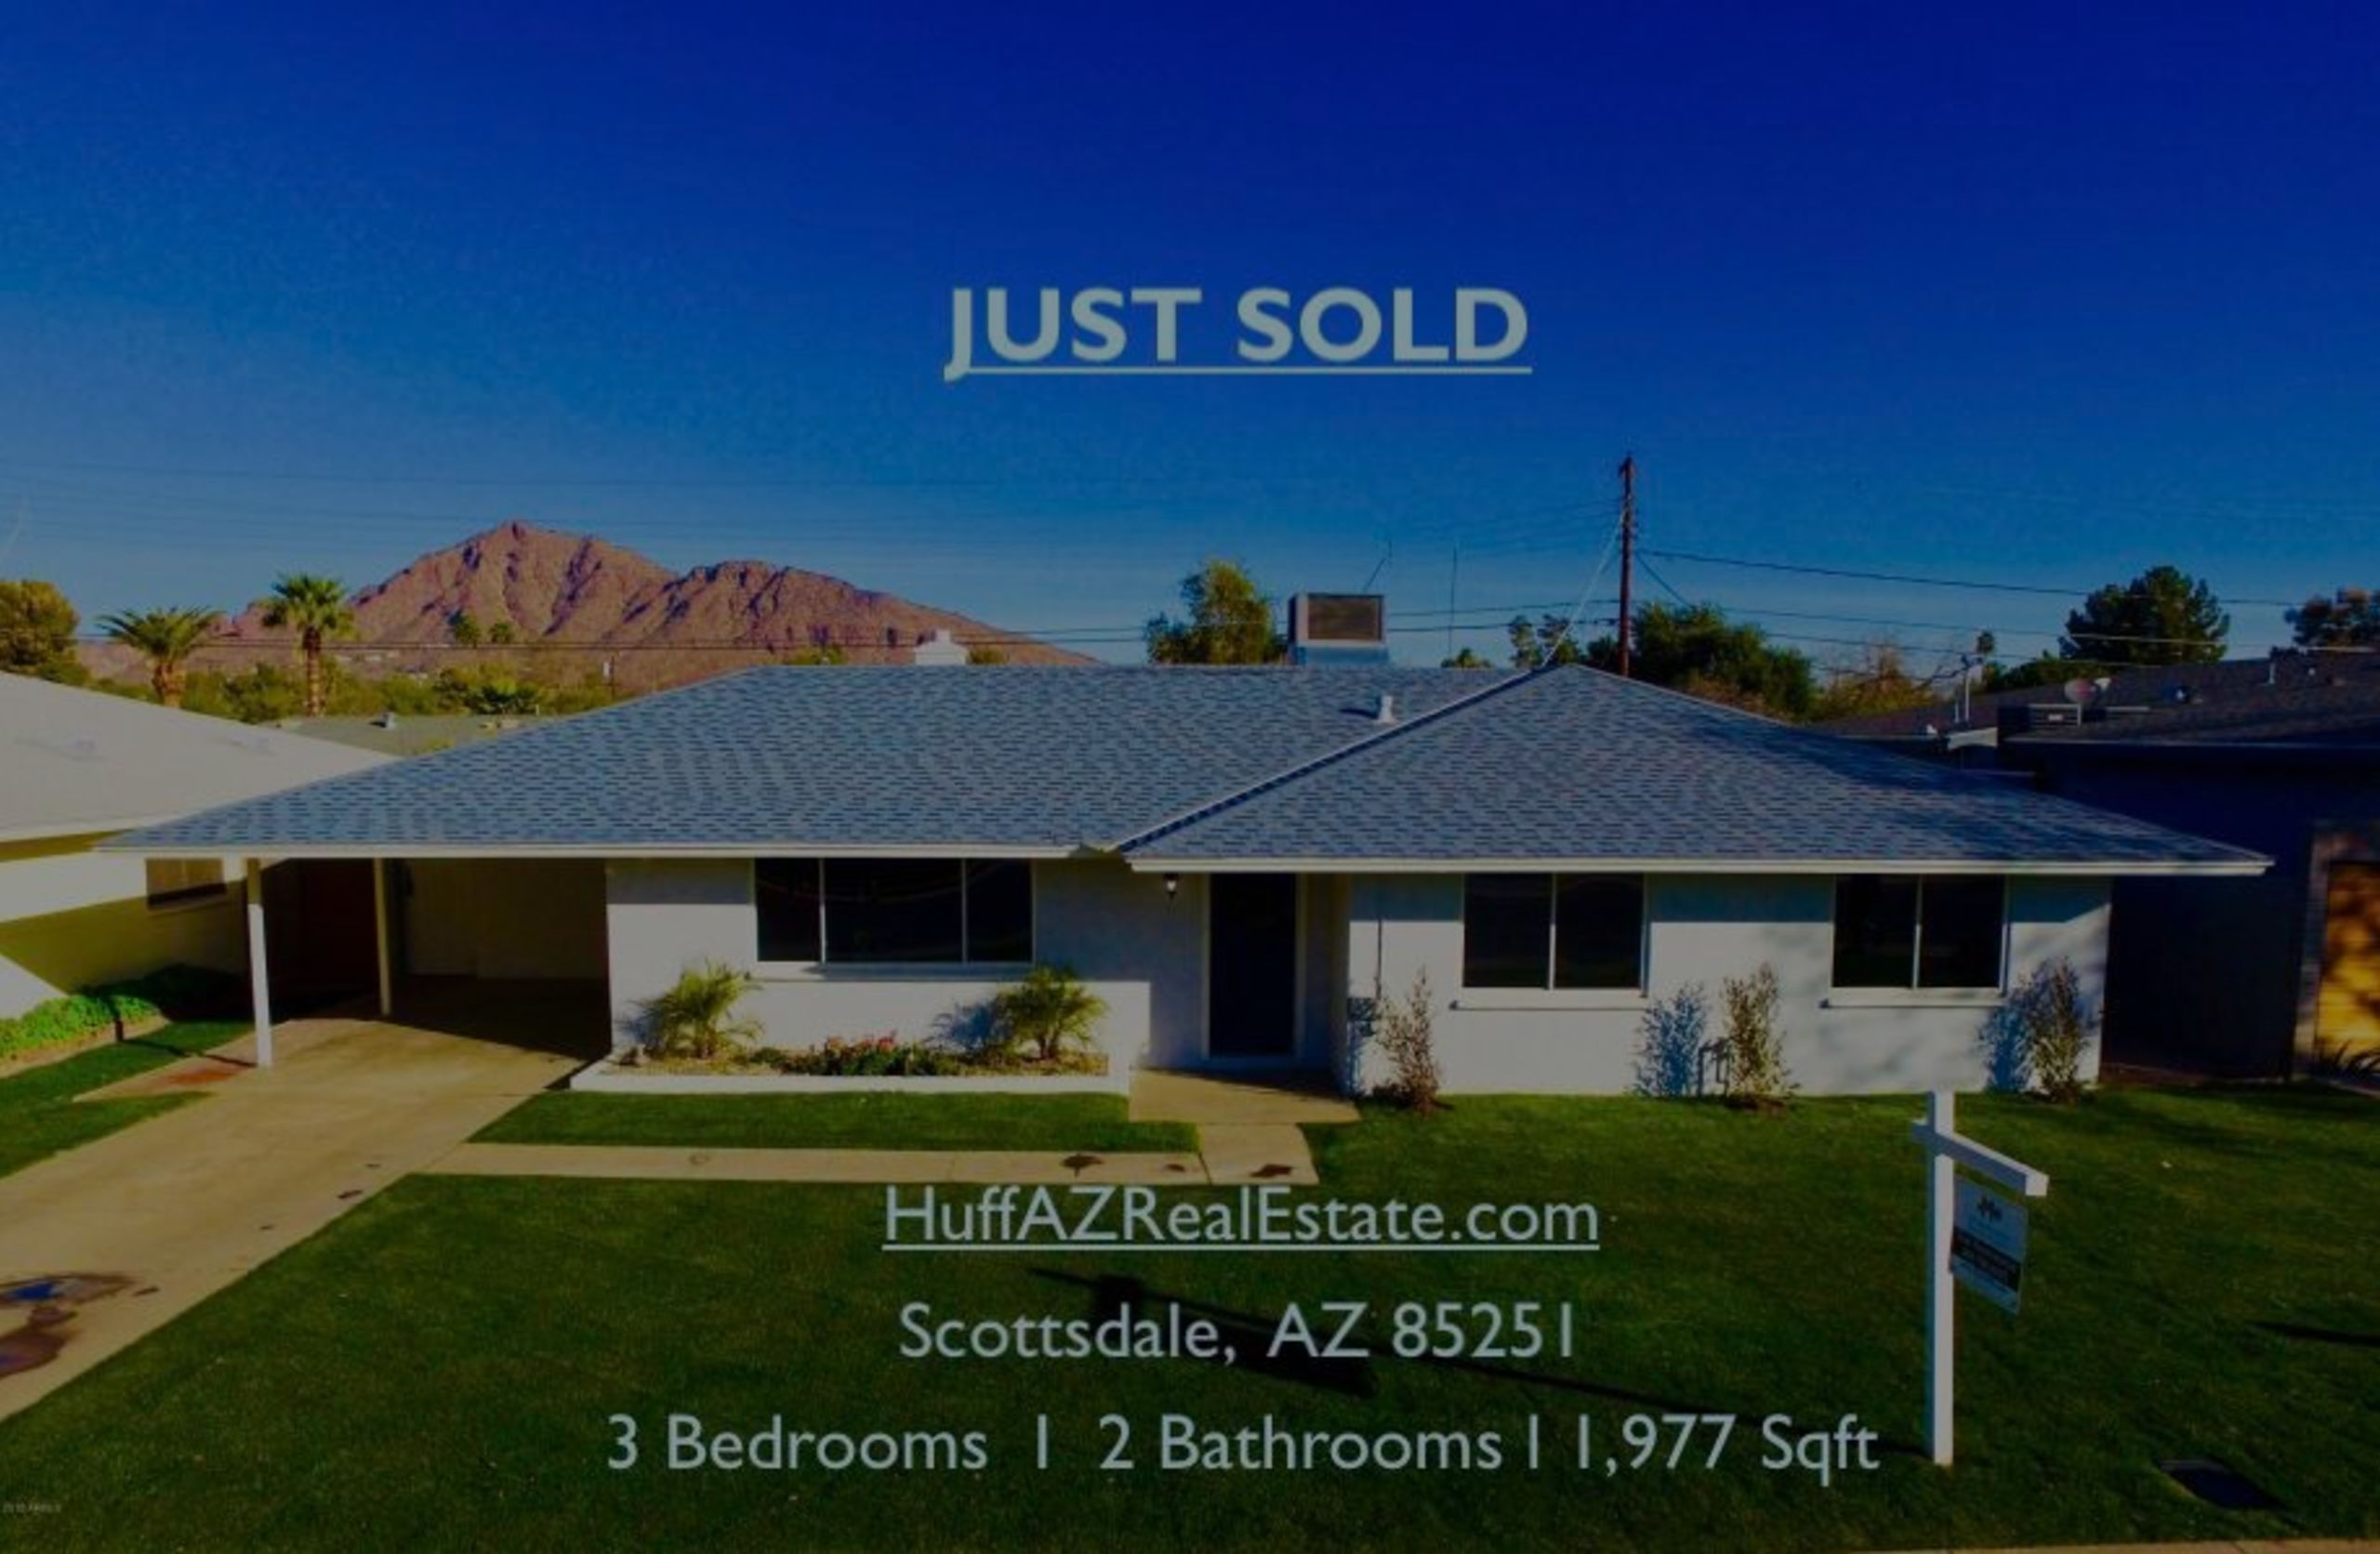 Just Sold – 5746181